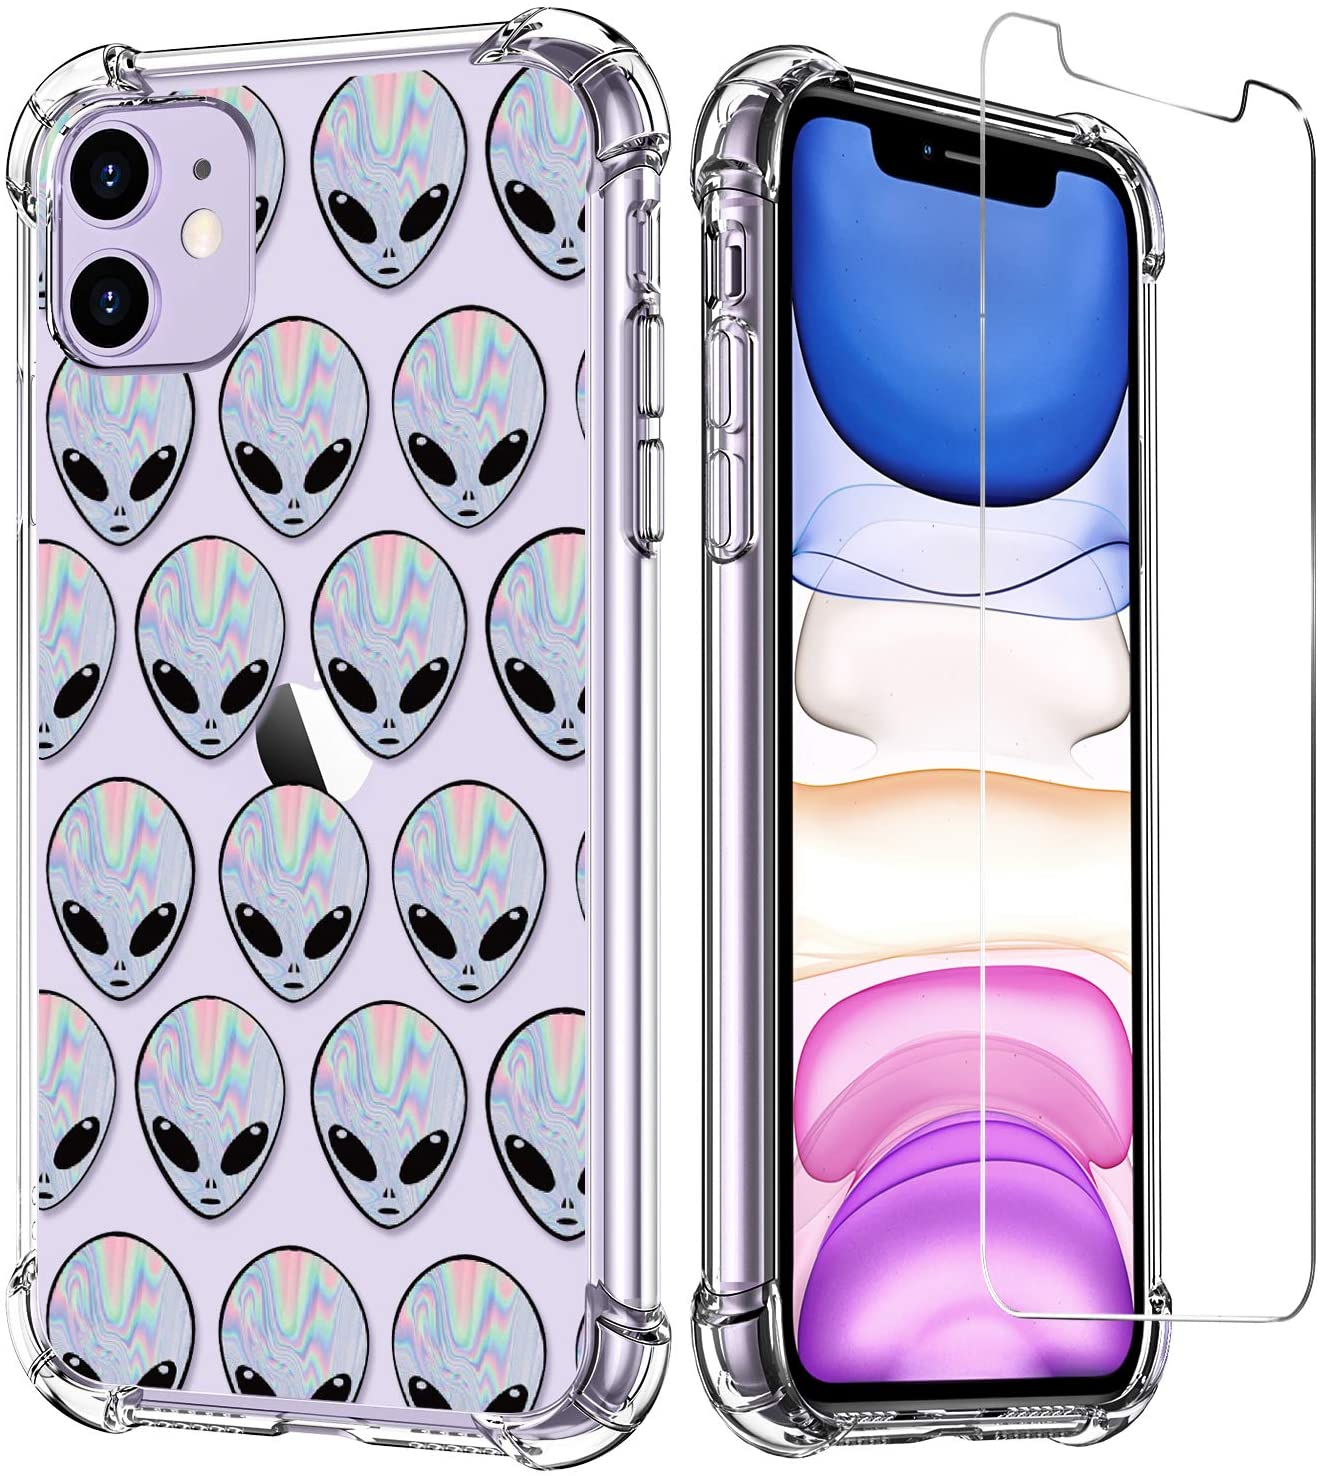 LUXVEER iPhone 11 Case with Tempered Glass Screen Protector,Aliens on Soft TPU Bumper Cover for Grils Women,Shockproof Slim Fit Protective Phone Case for Apple iPhone 11 6.1 inch